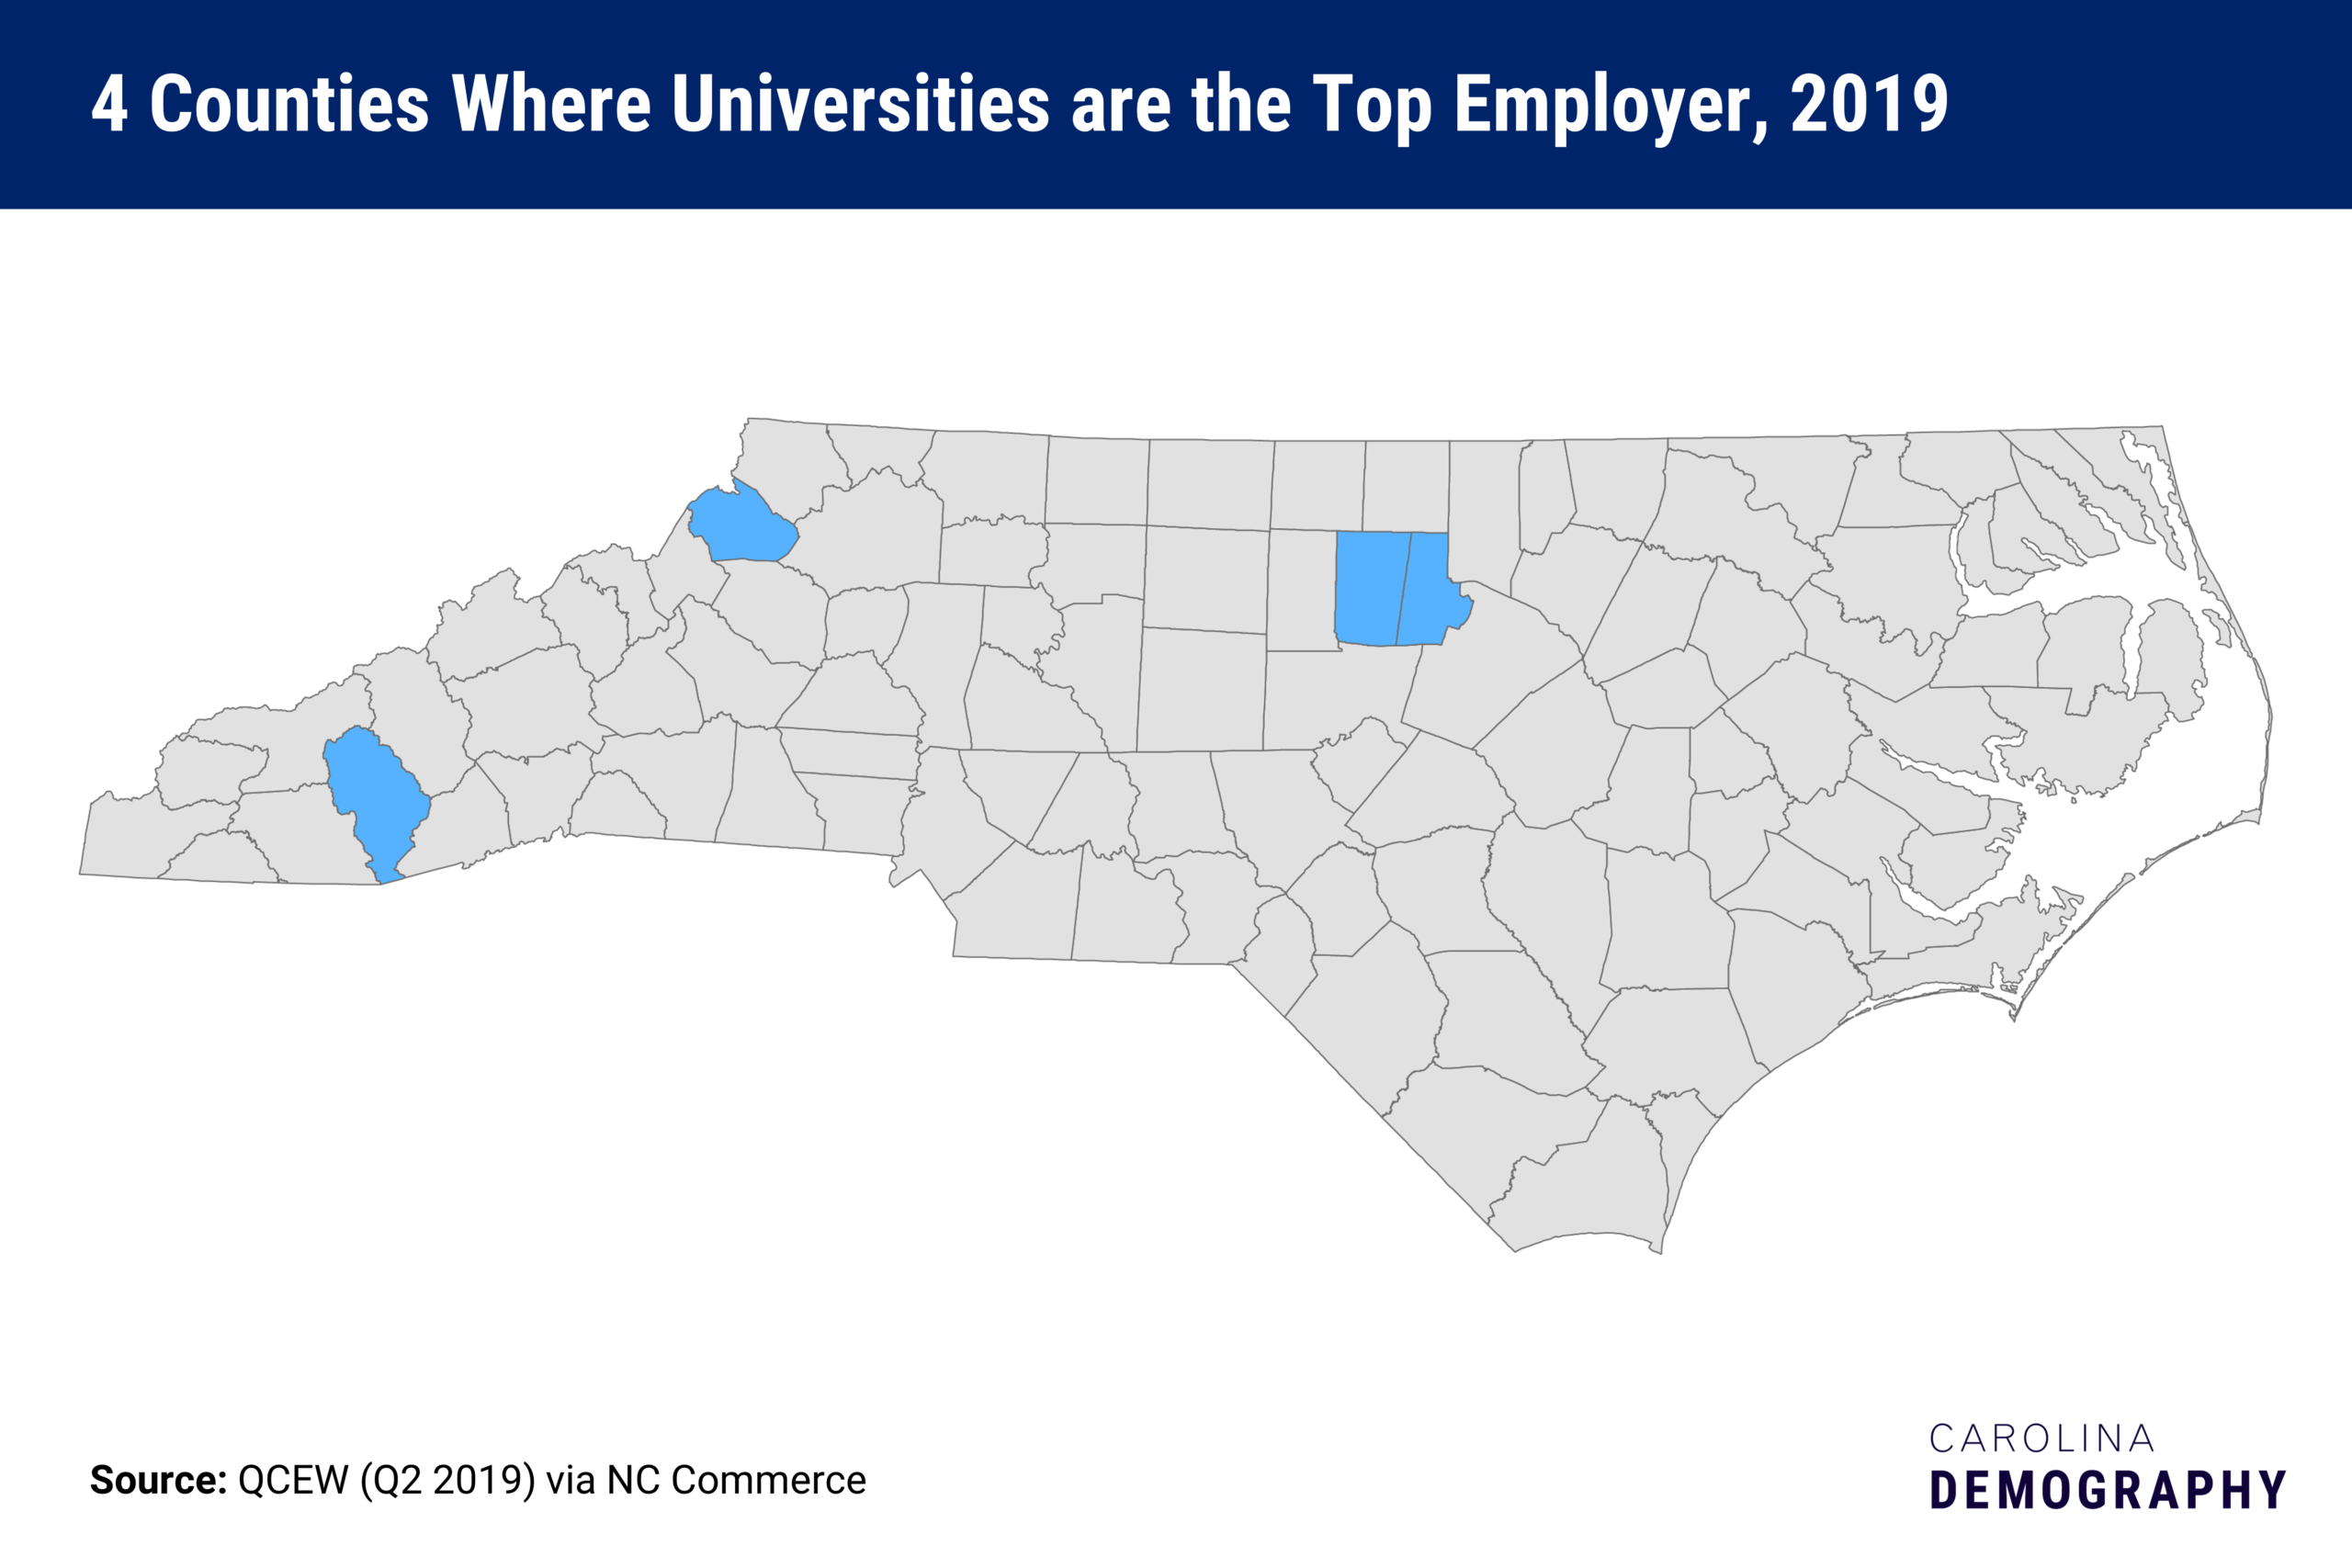 Map of NC: 4 counties where universities are the top employer, 2019. Jackson, Watauga, Orange, Durham